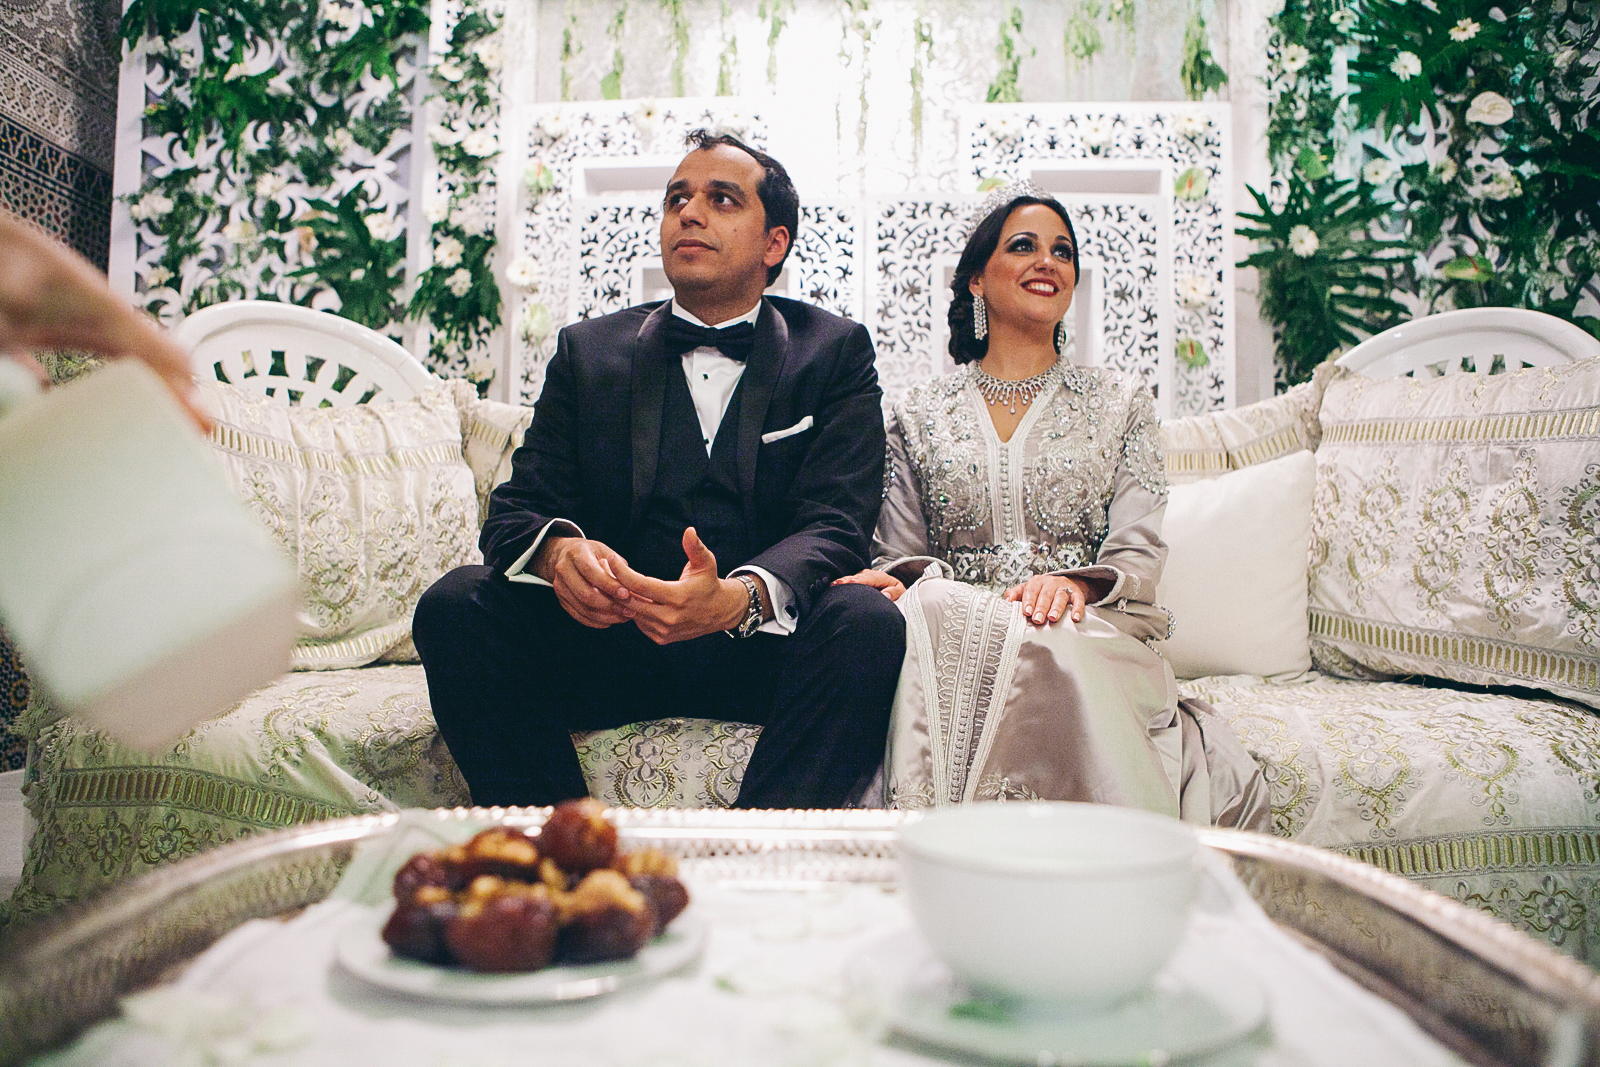 traditional_moroccan_wedding_photographry_casablanca_morocco_houda_vivek_ebony_siovhan_bokeh_photography_084.jpg